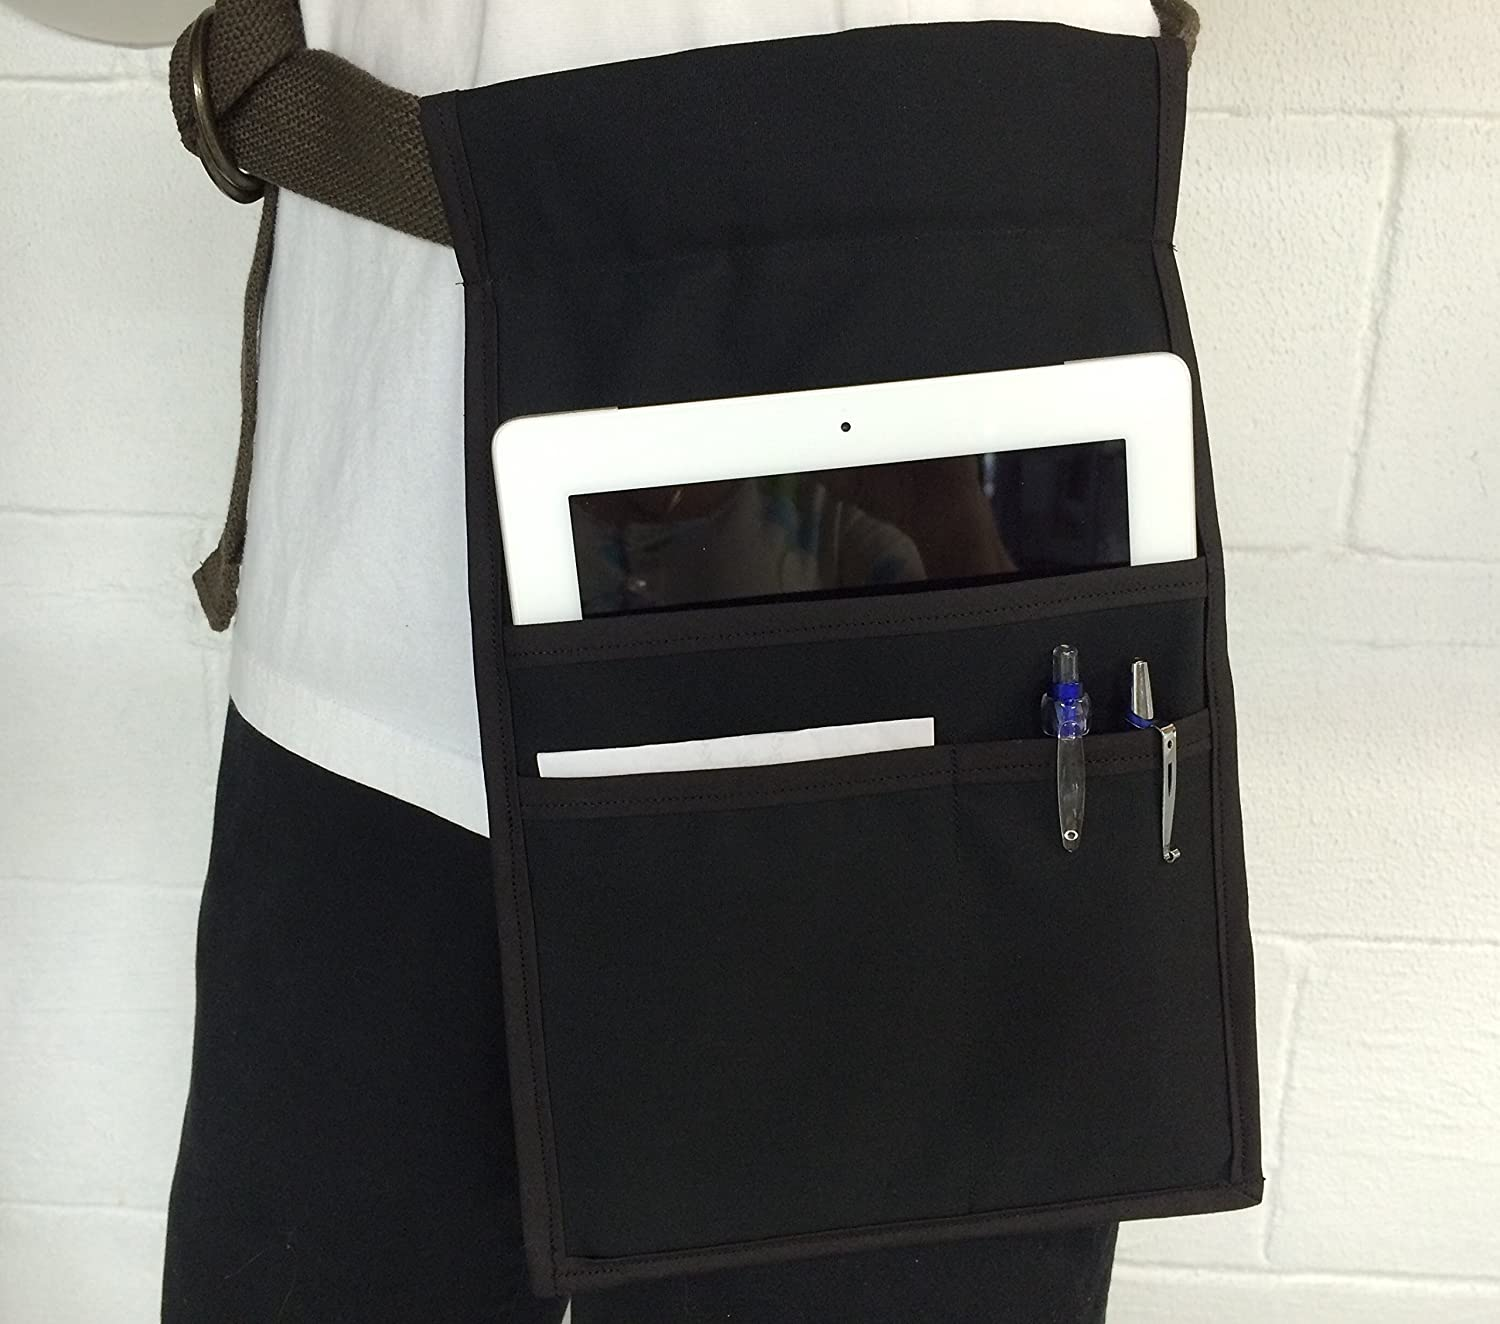 Black belt top ( I Pad ) Heavy Duty side apron money Pouch Waitress Pockets Restaurant Bars Cafes Handmade ( Janet's Aprons)